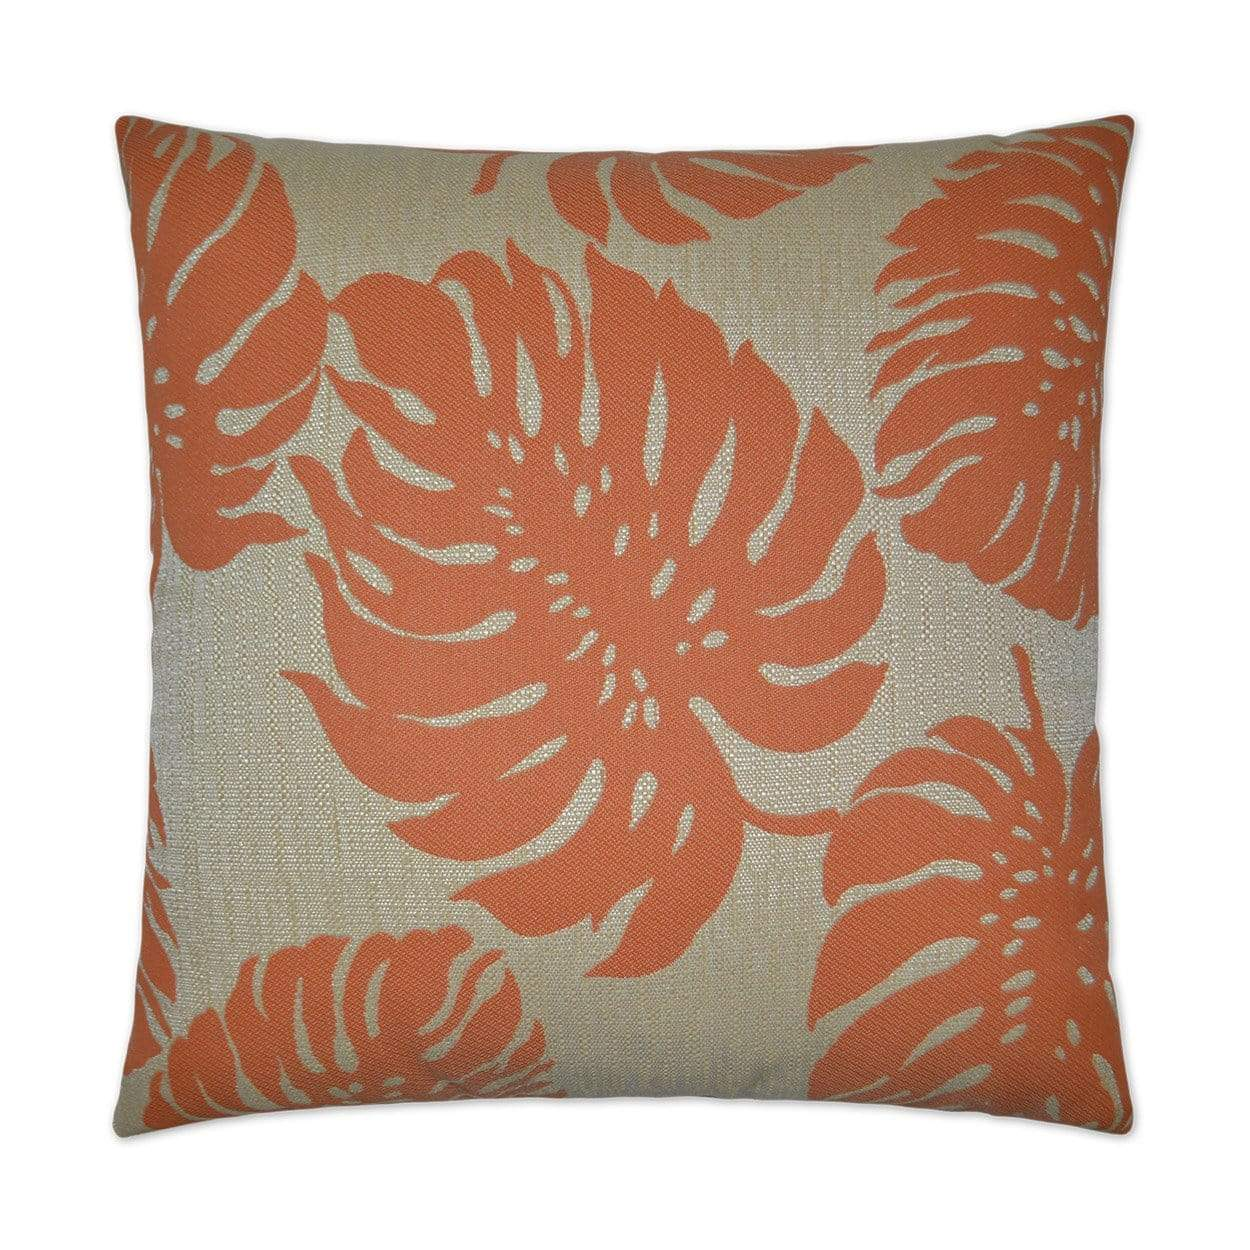 D.V. Kap D.V. Kap Bay Palm Outdoor Pillow Orange OD-135-O